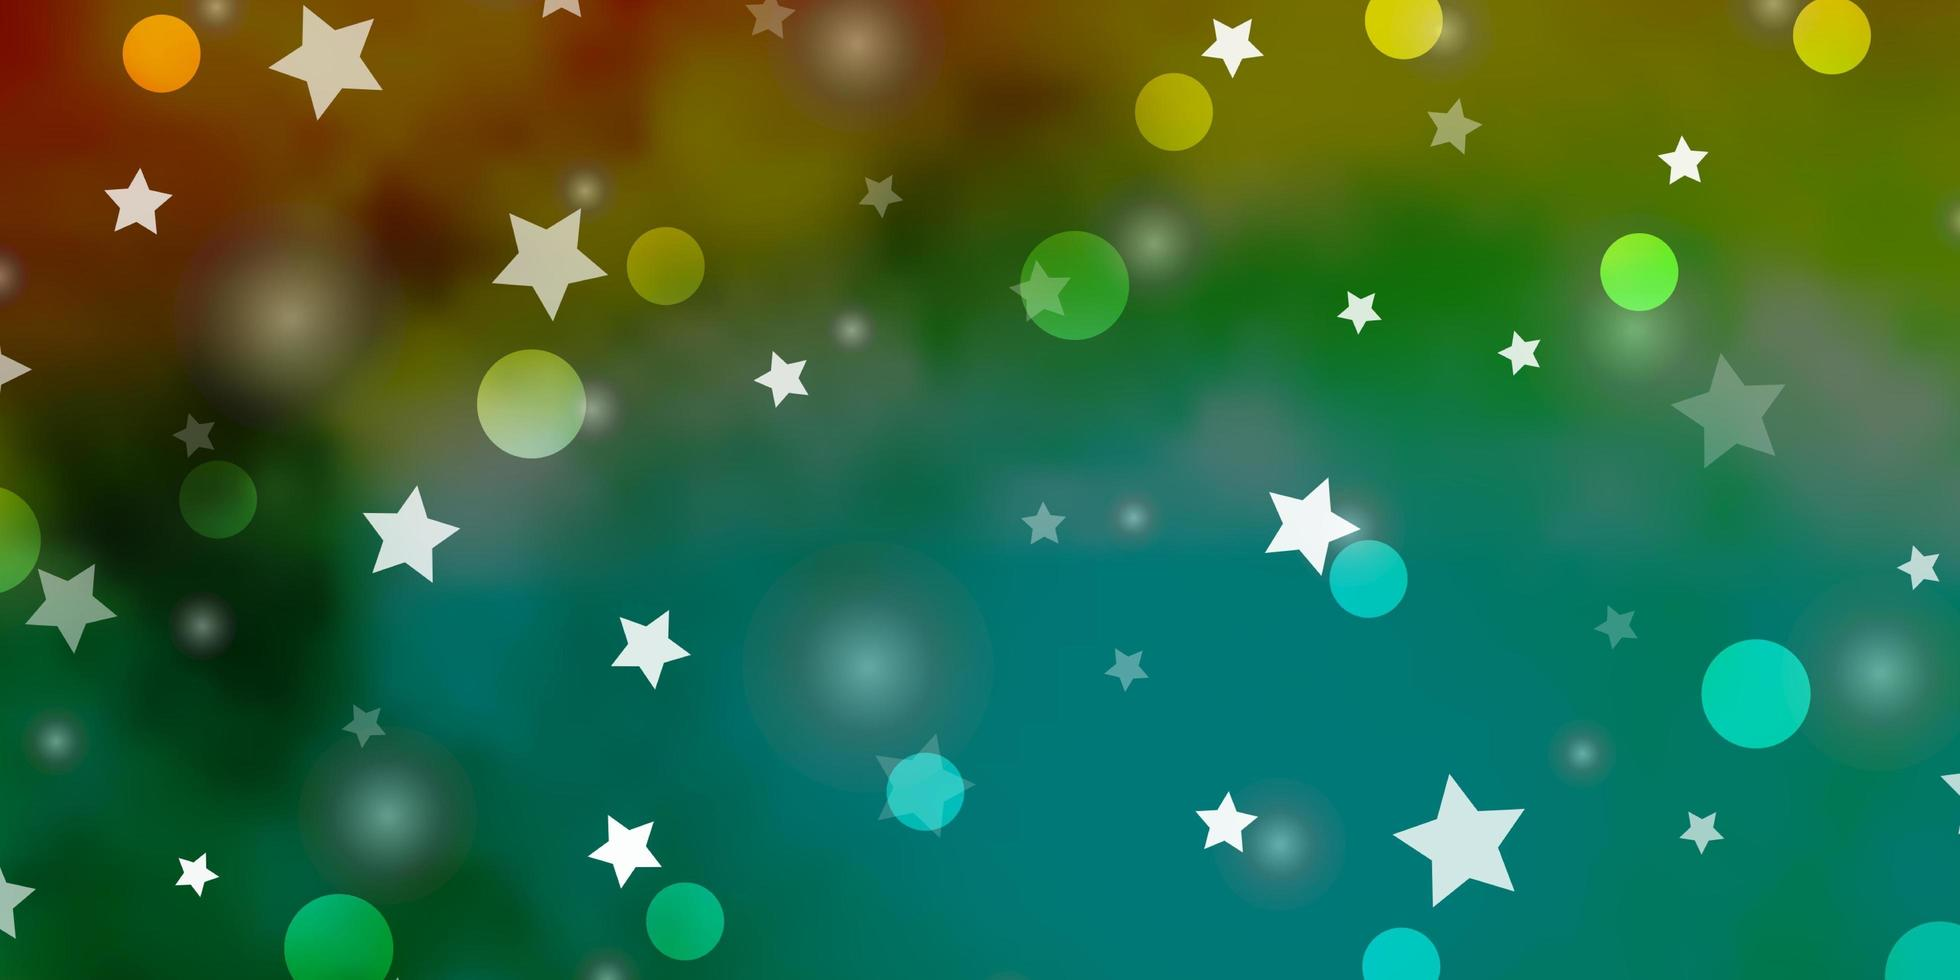 Light Green, Yellow vector texture with circles, stars.